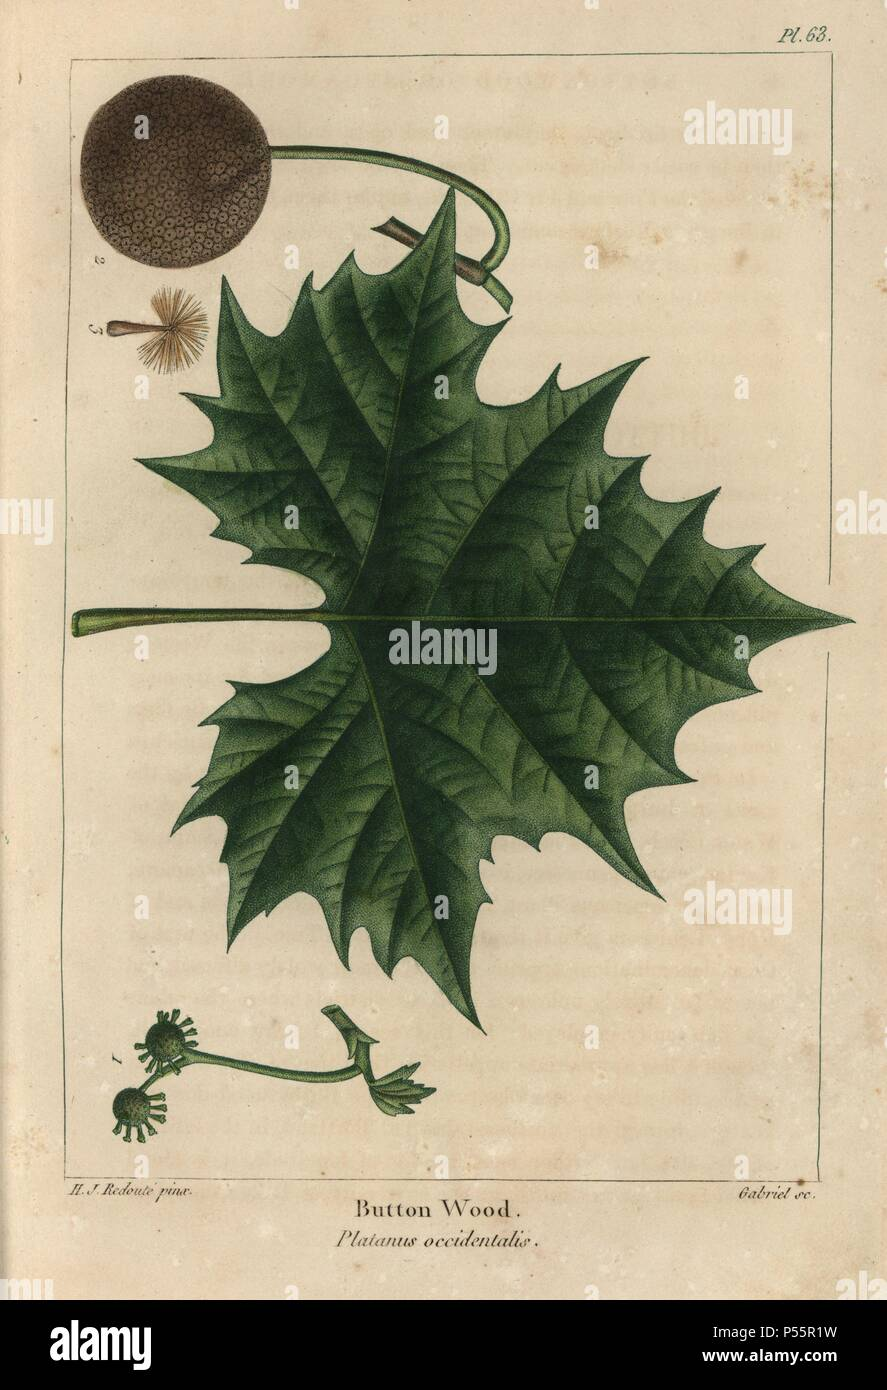 Leaf, fruit, flower and seed of the Buttonwood or sycamore maple tree, Platanus occidentalis. Handcolored stipple engraving from a botanical illustration by Henri Joseph Redoute, engraved on copper by Gabriel, from Francois Andre Michaux's 'North American Sylva,' Philadelphia, 1857. French botanist Michaux (1770-1855) explored America and Canada in 1785 cataloging its native trees. - Stock Image